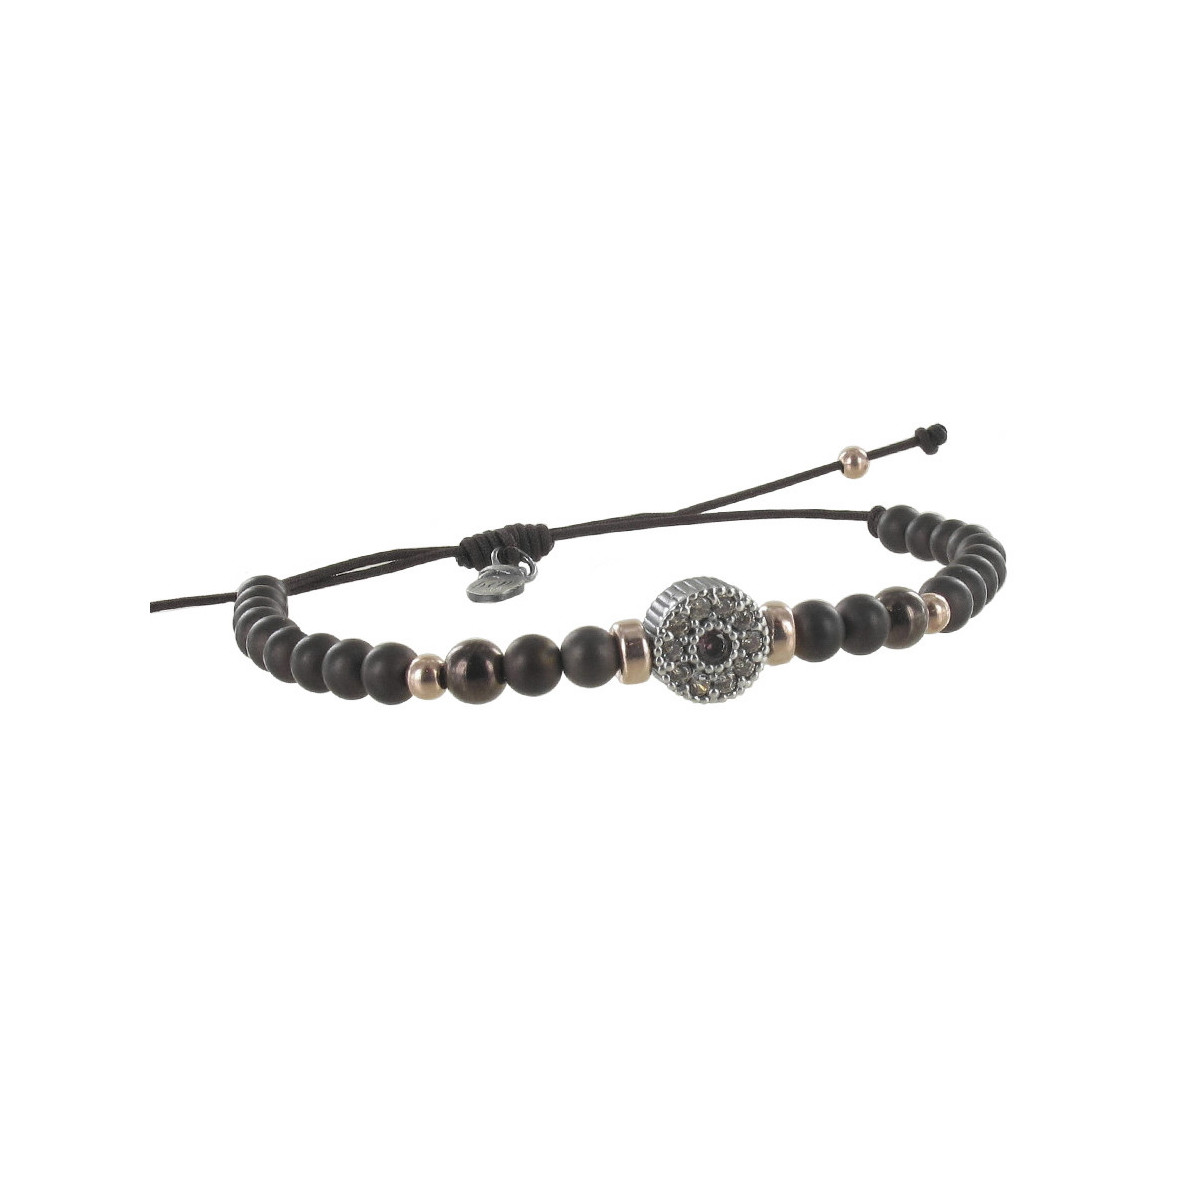 SILVER BALL AND PATTERN BRACELET WITH STONES